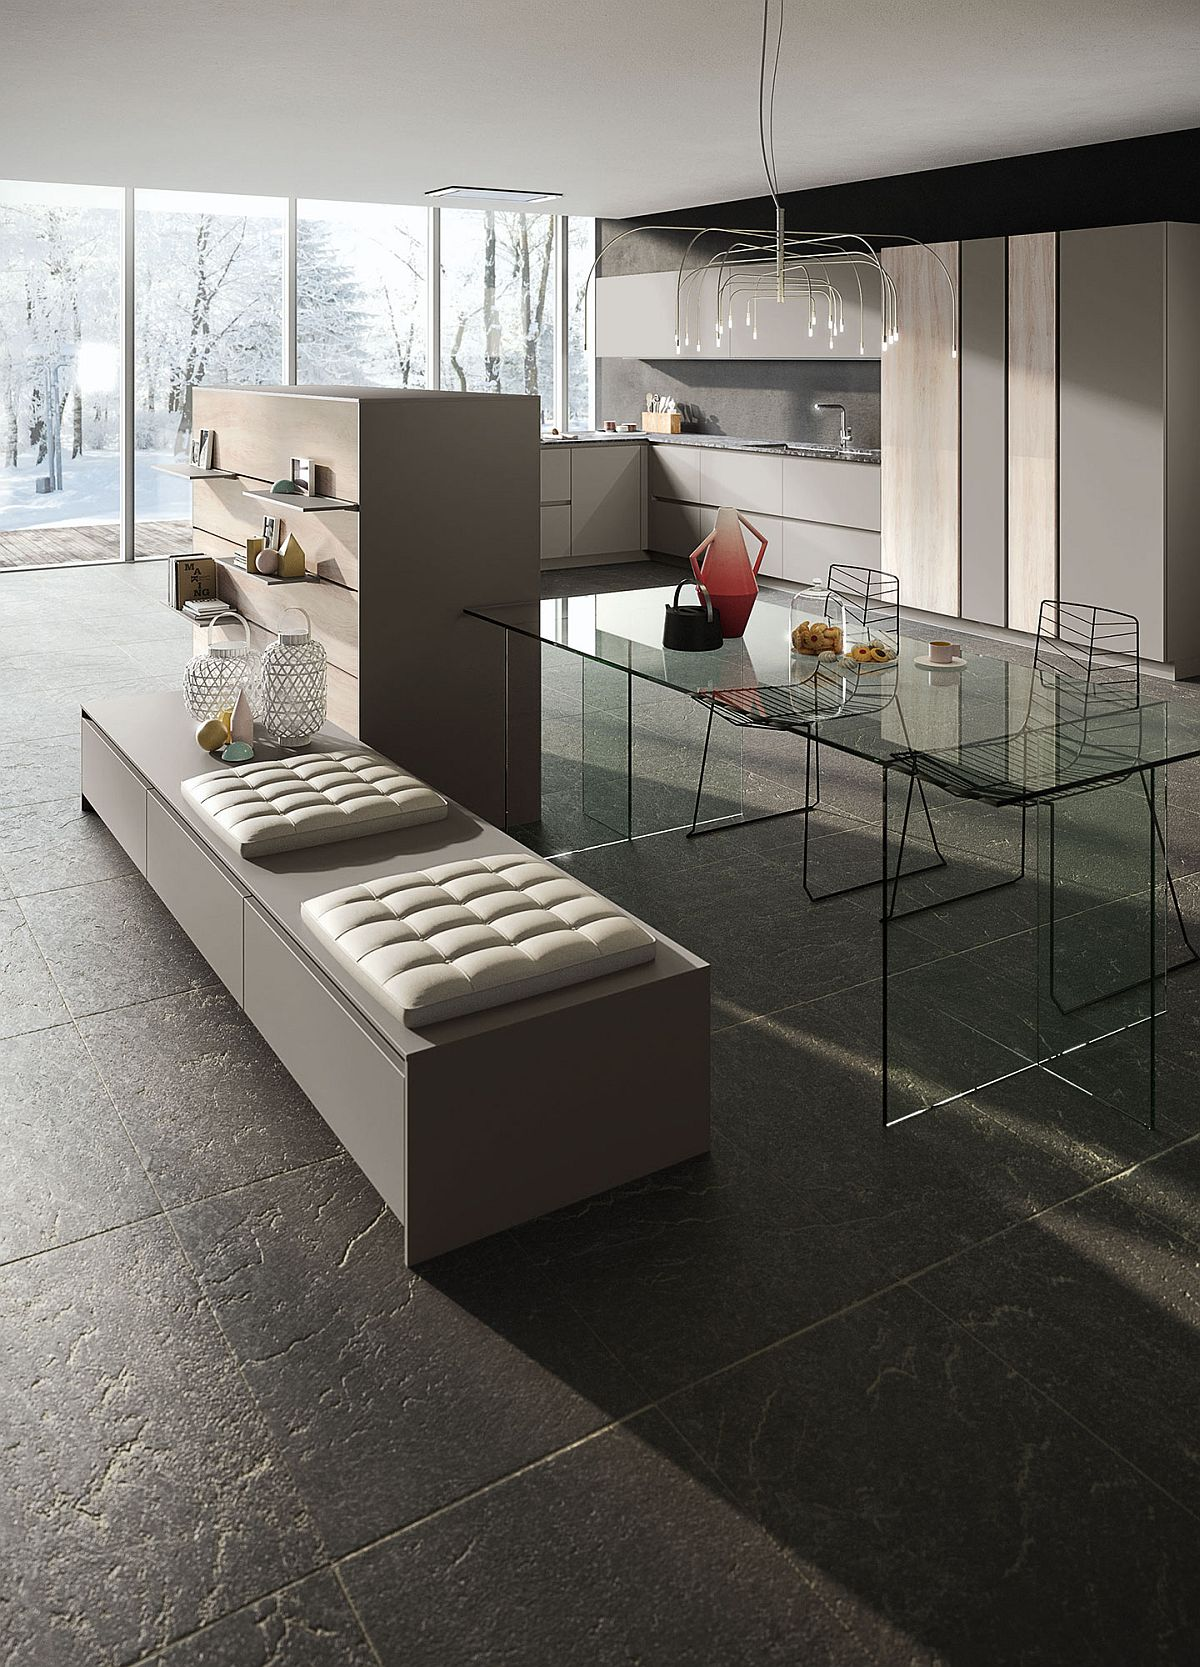 Base and cupboard units with distinctive minimal style